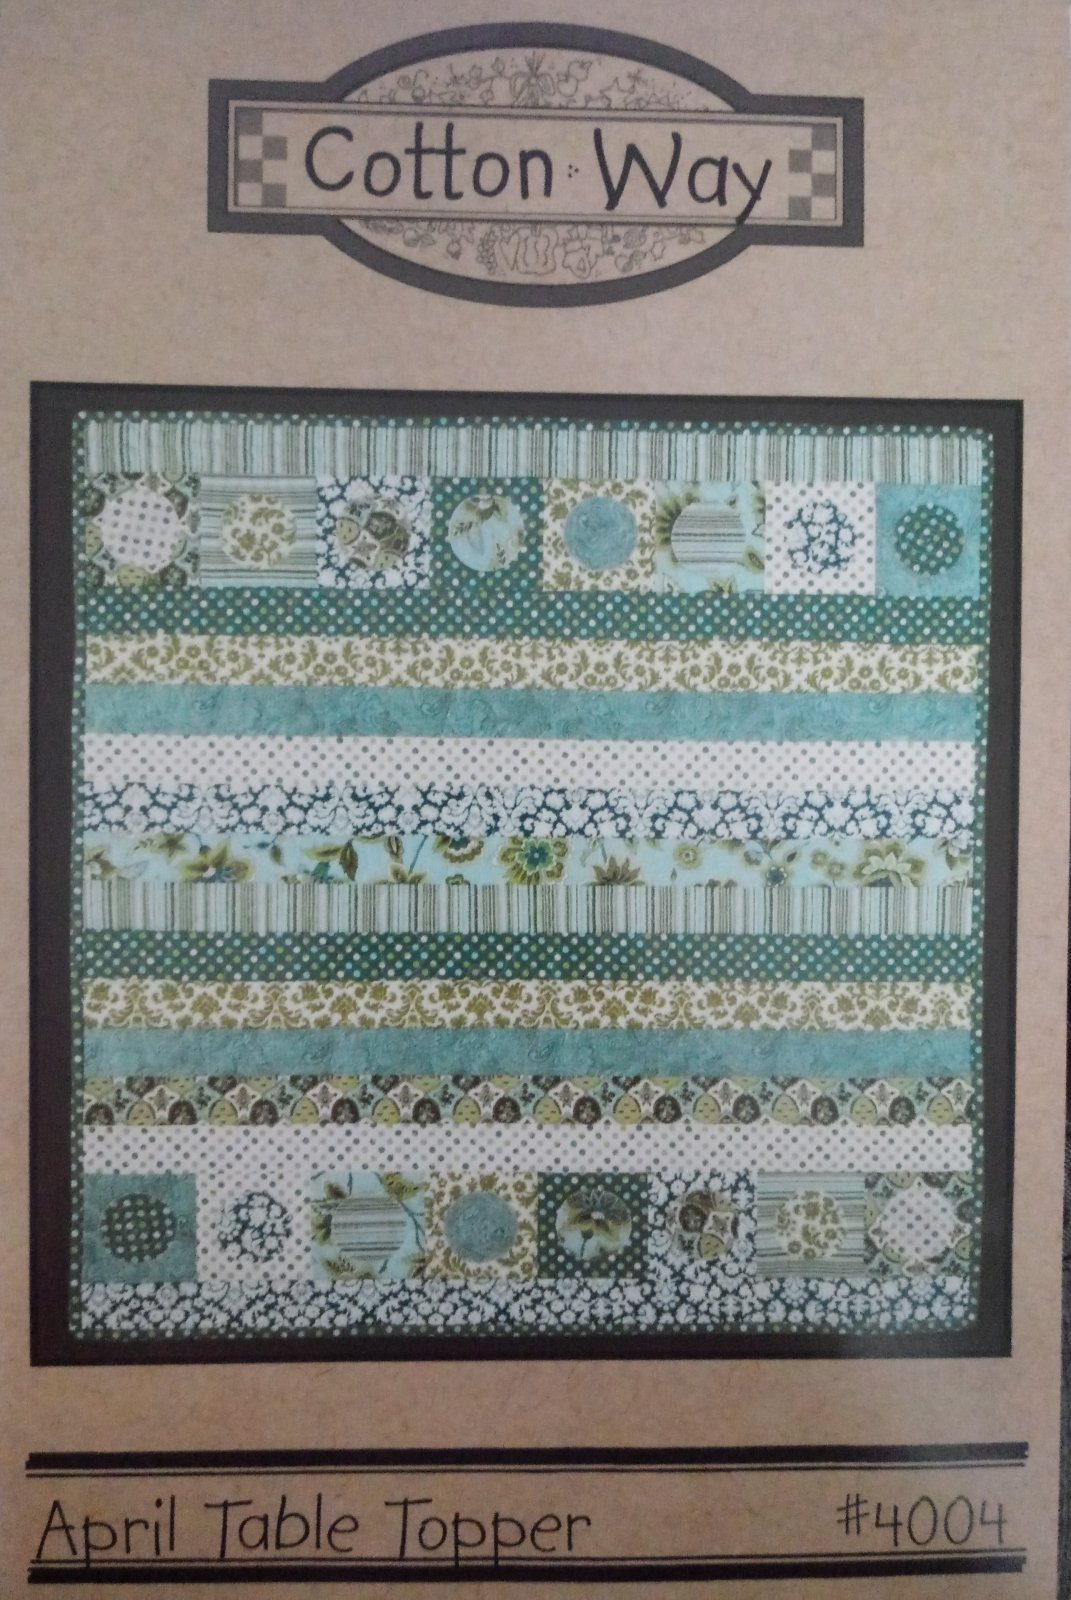 April Table Topper #4004 by Cotton Way